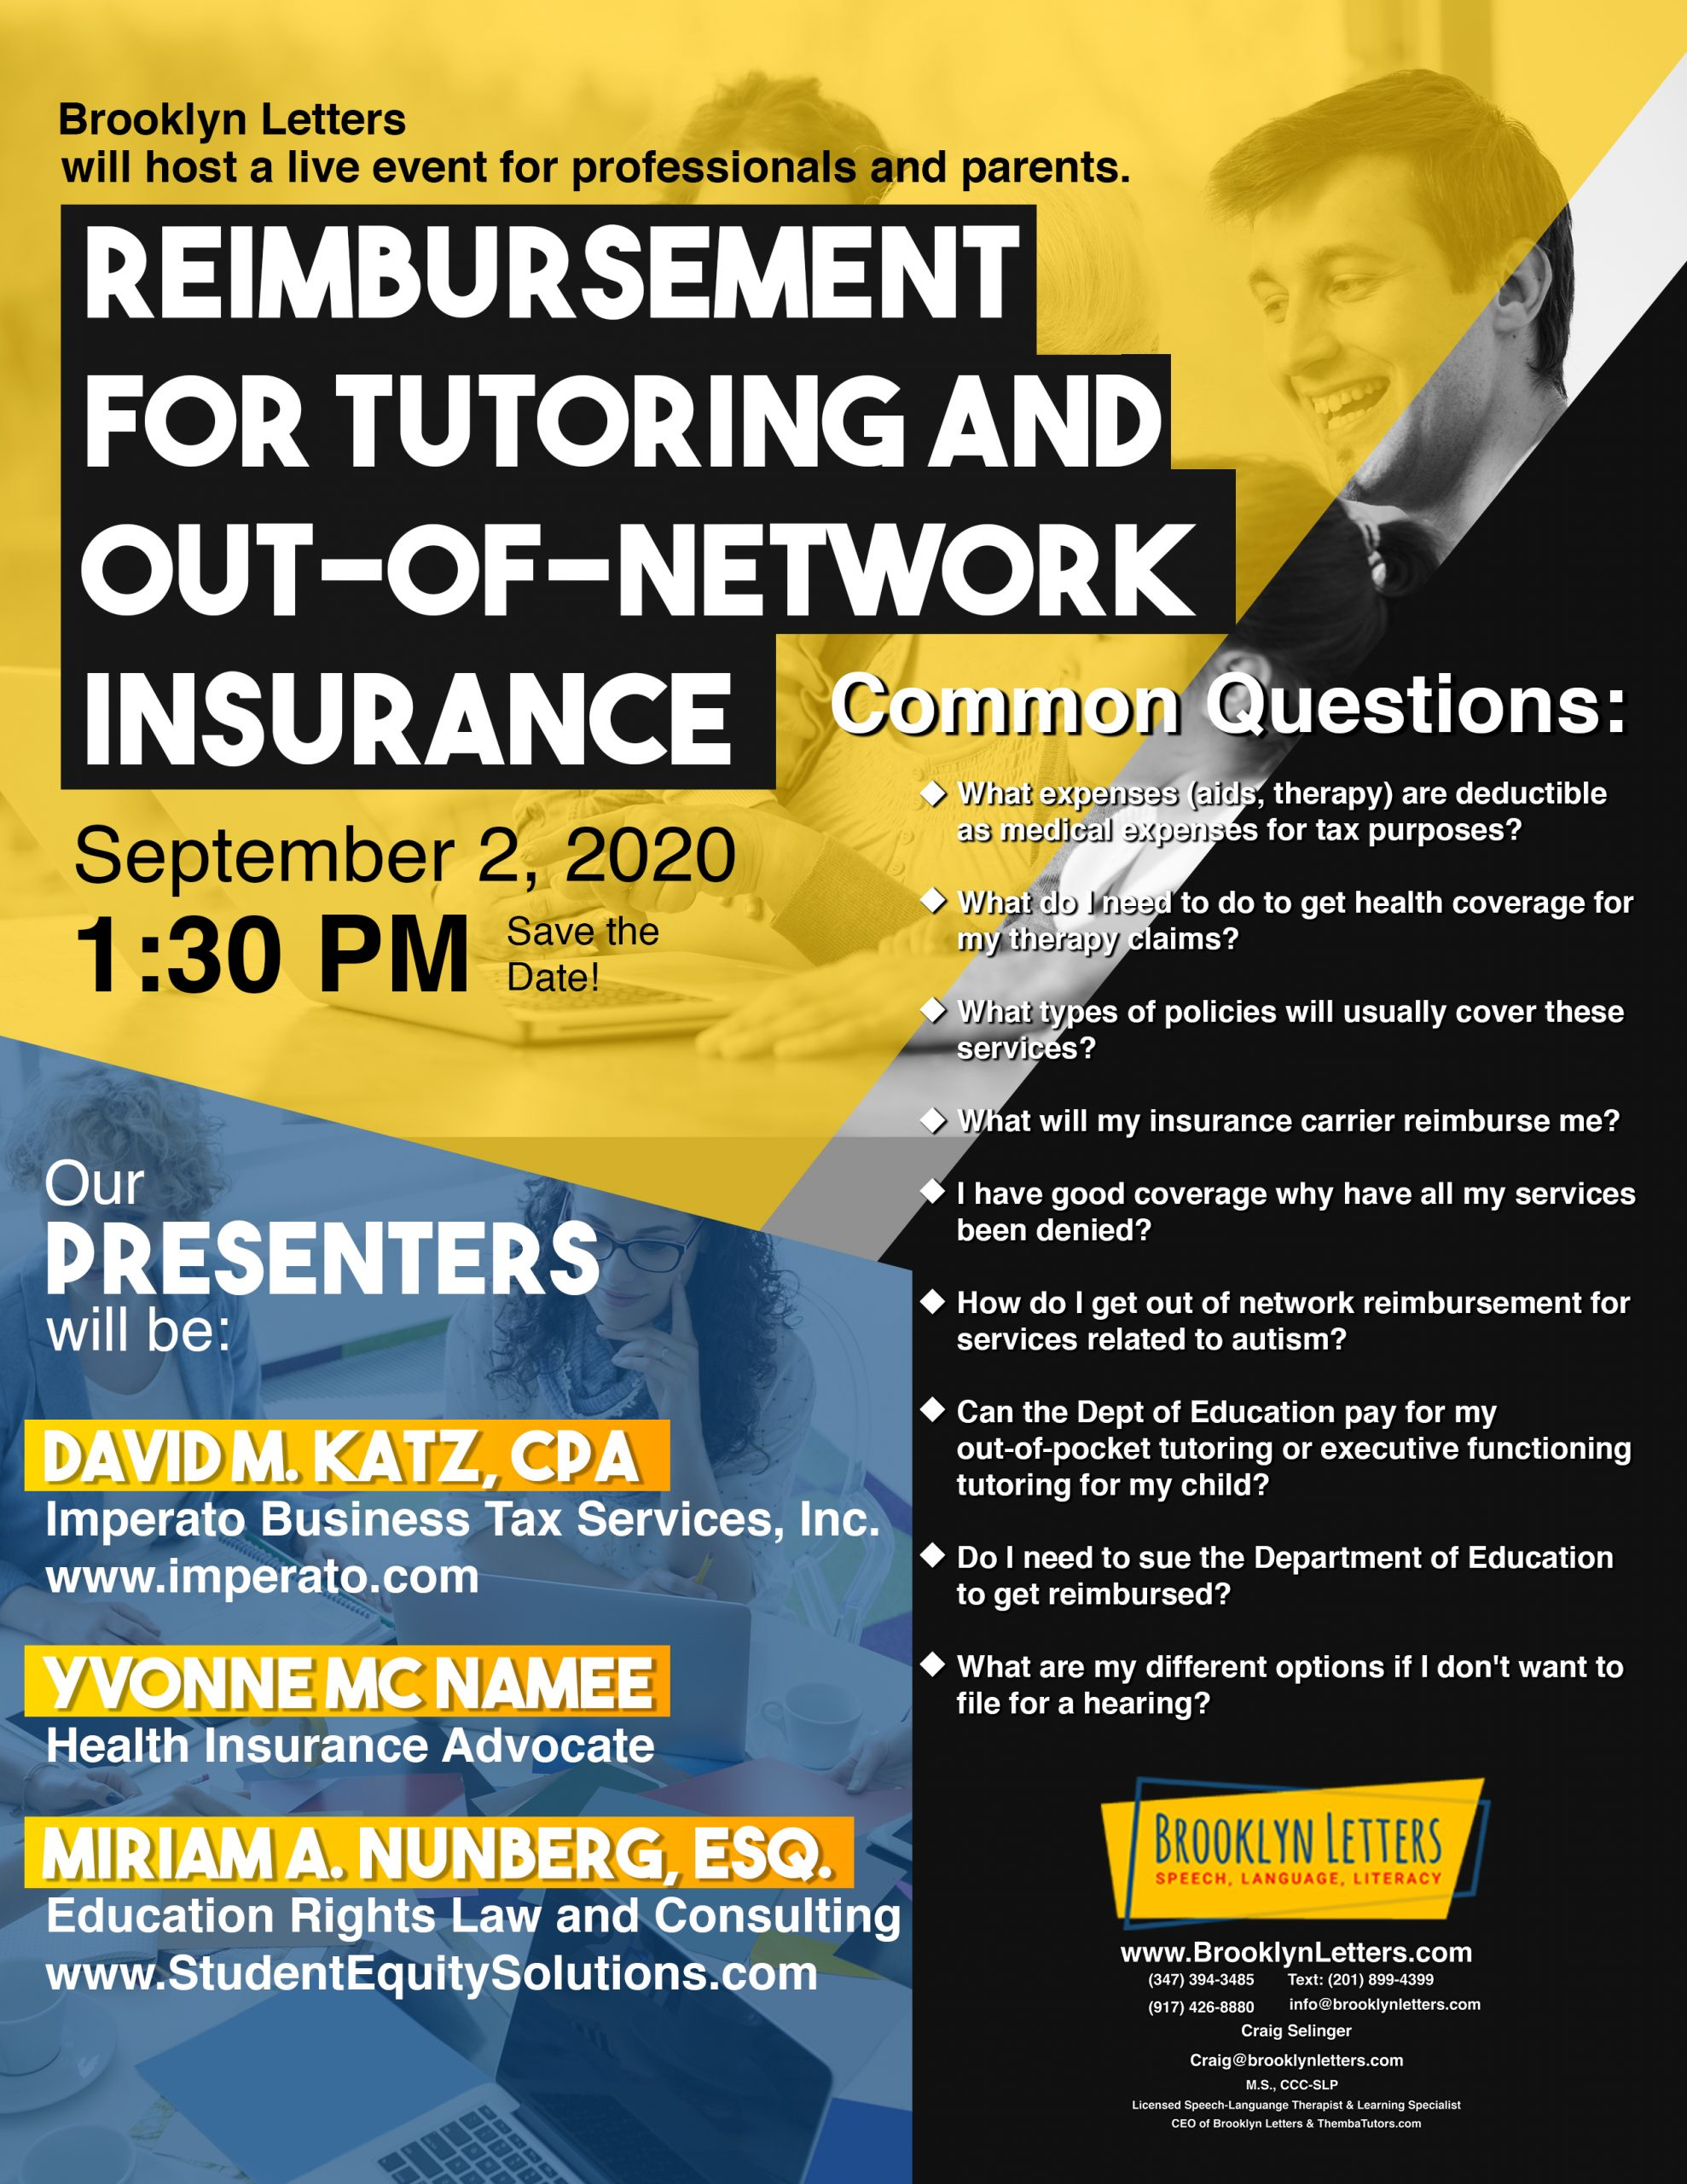 Learn How to Save Money for Tutoring and Out-of-Network Therapy Services!